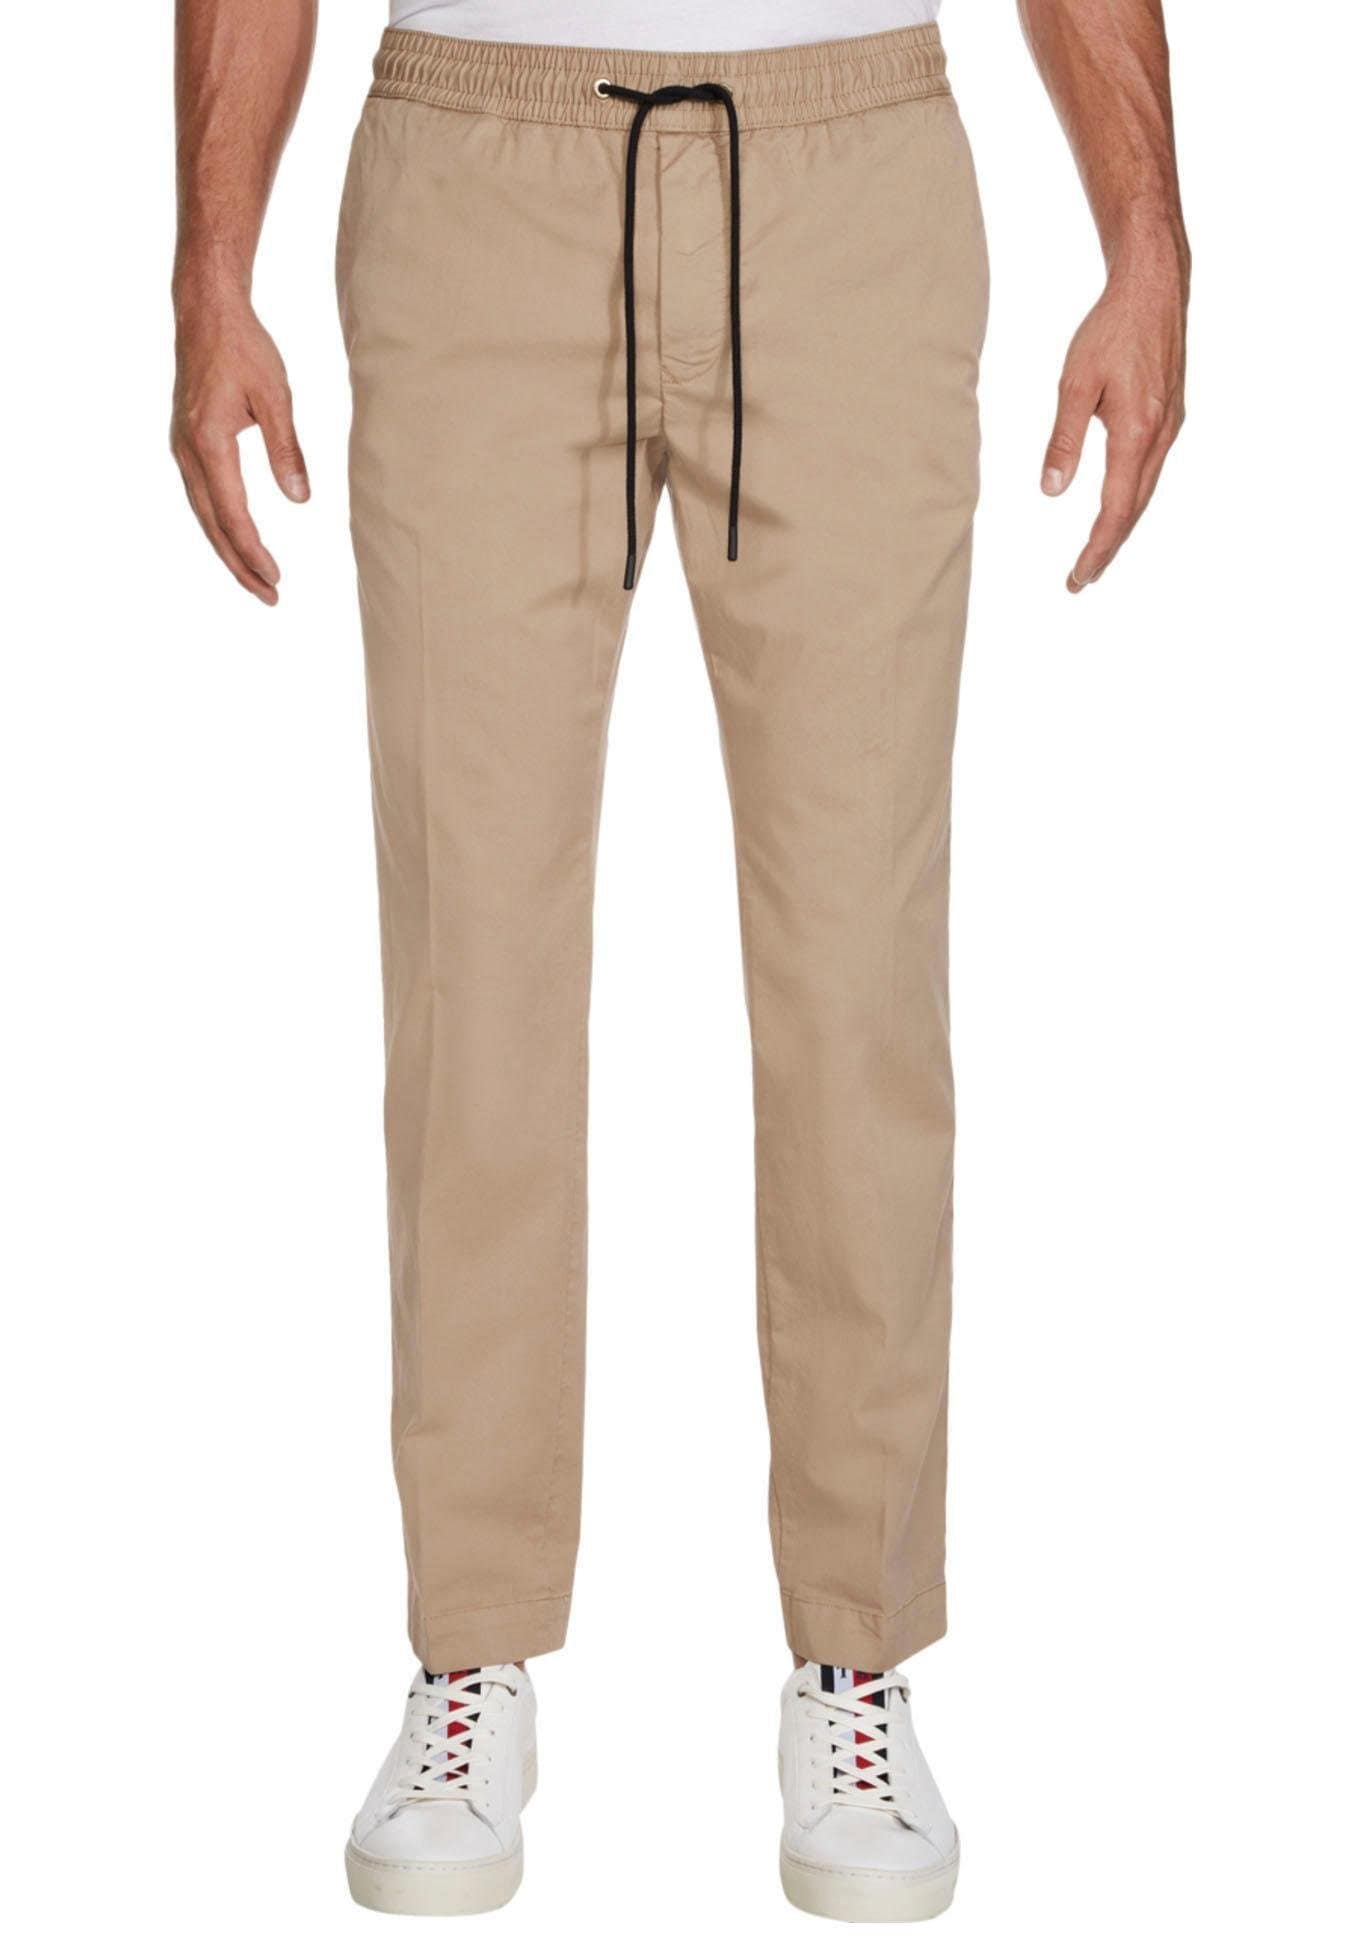 tommy hilfiger -  Stoffhose ACTIVE PANT SUMMER TWILL FLEX